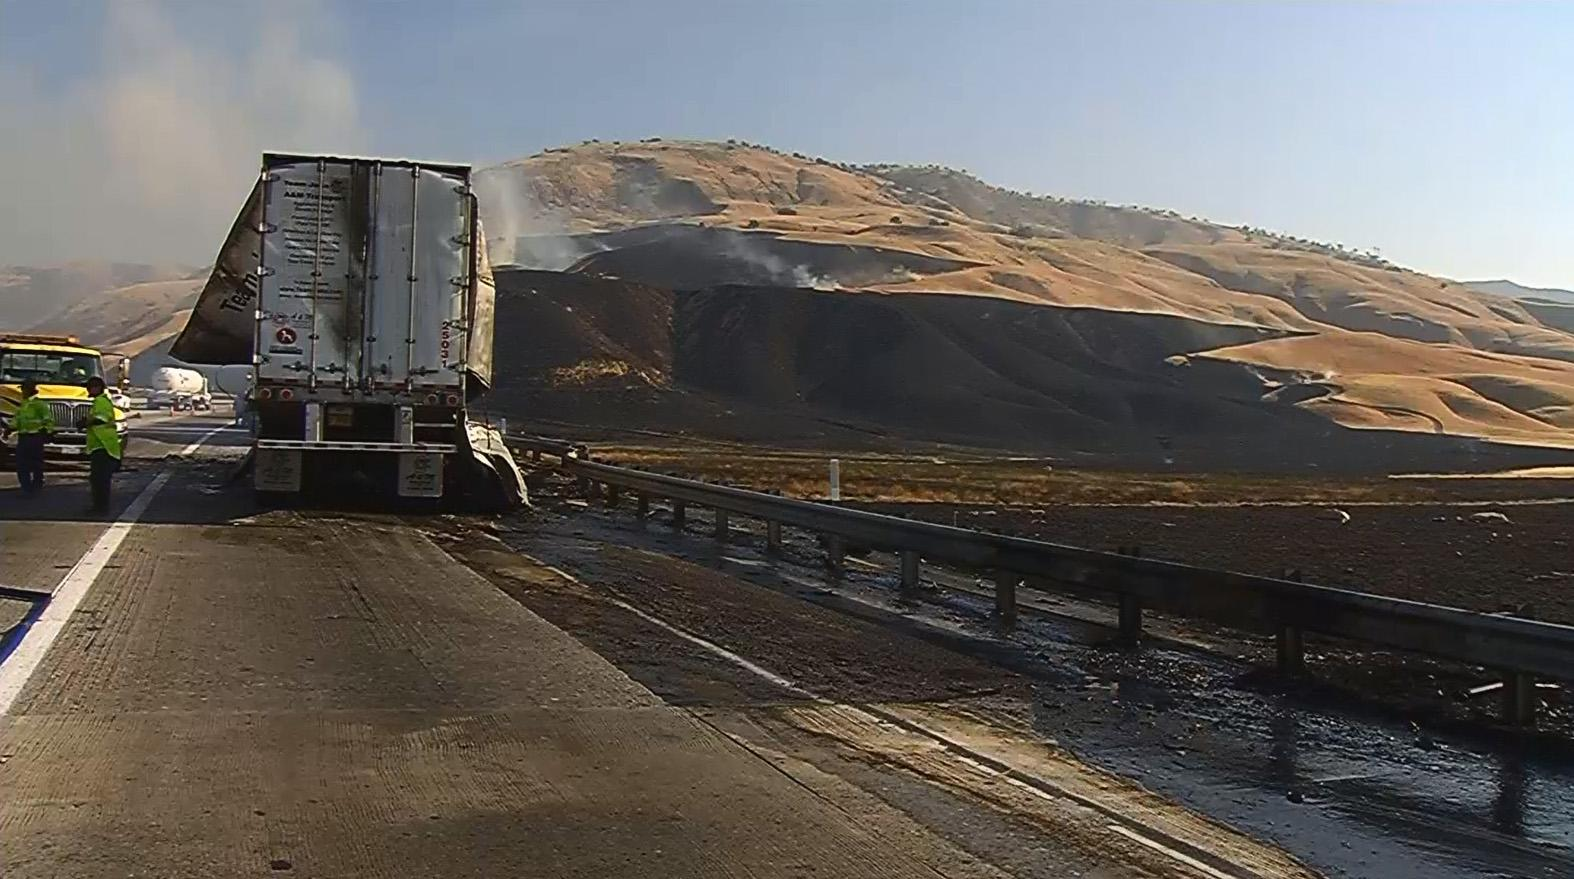 The results of a fiery crash involving two big rigs on southbound Interstate 5 at the base of the Grapevine are seen Thursday, Aug. 10, 2017. (KBAK/KBFX photo)